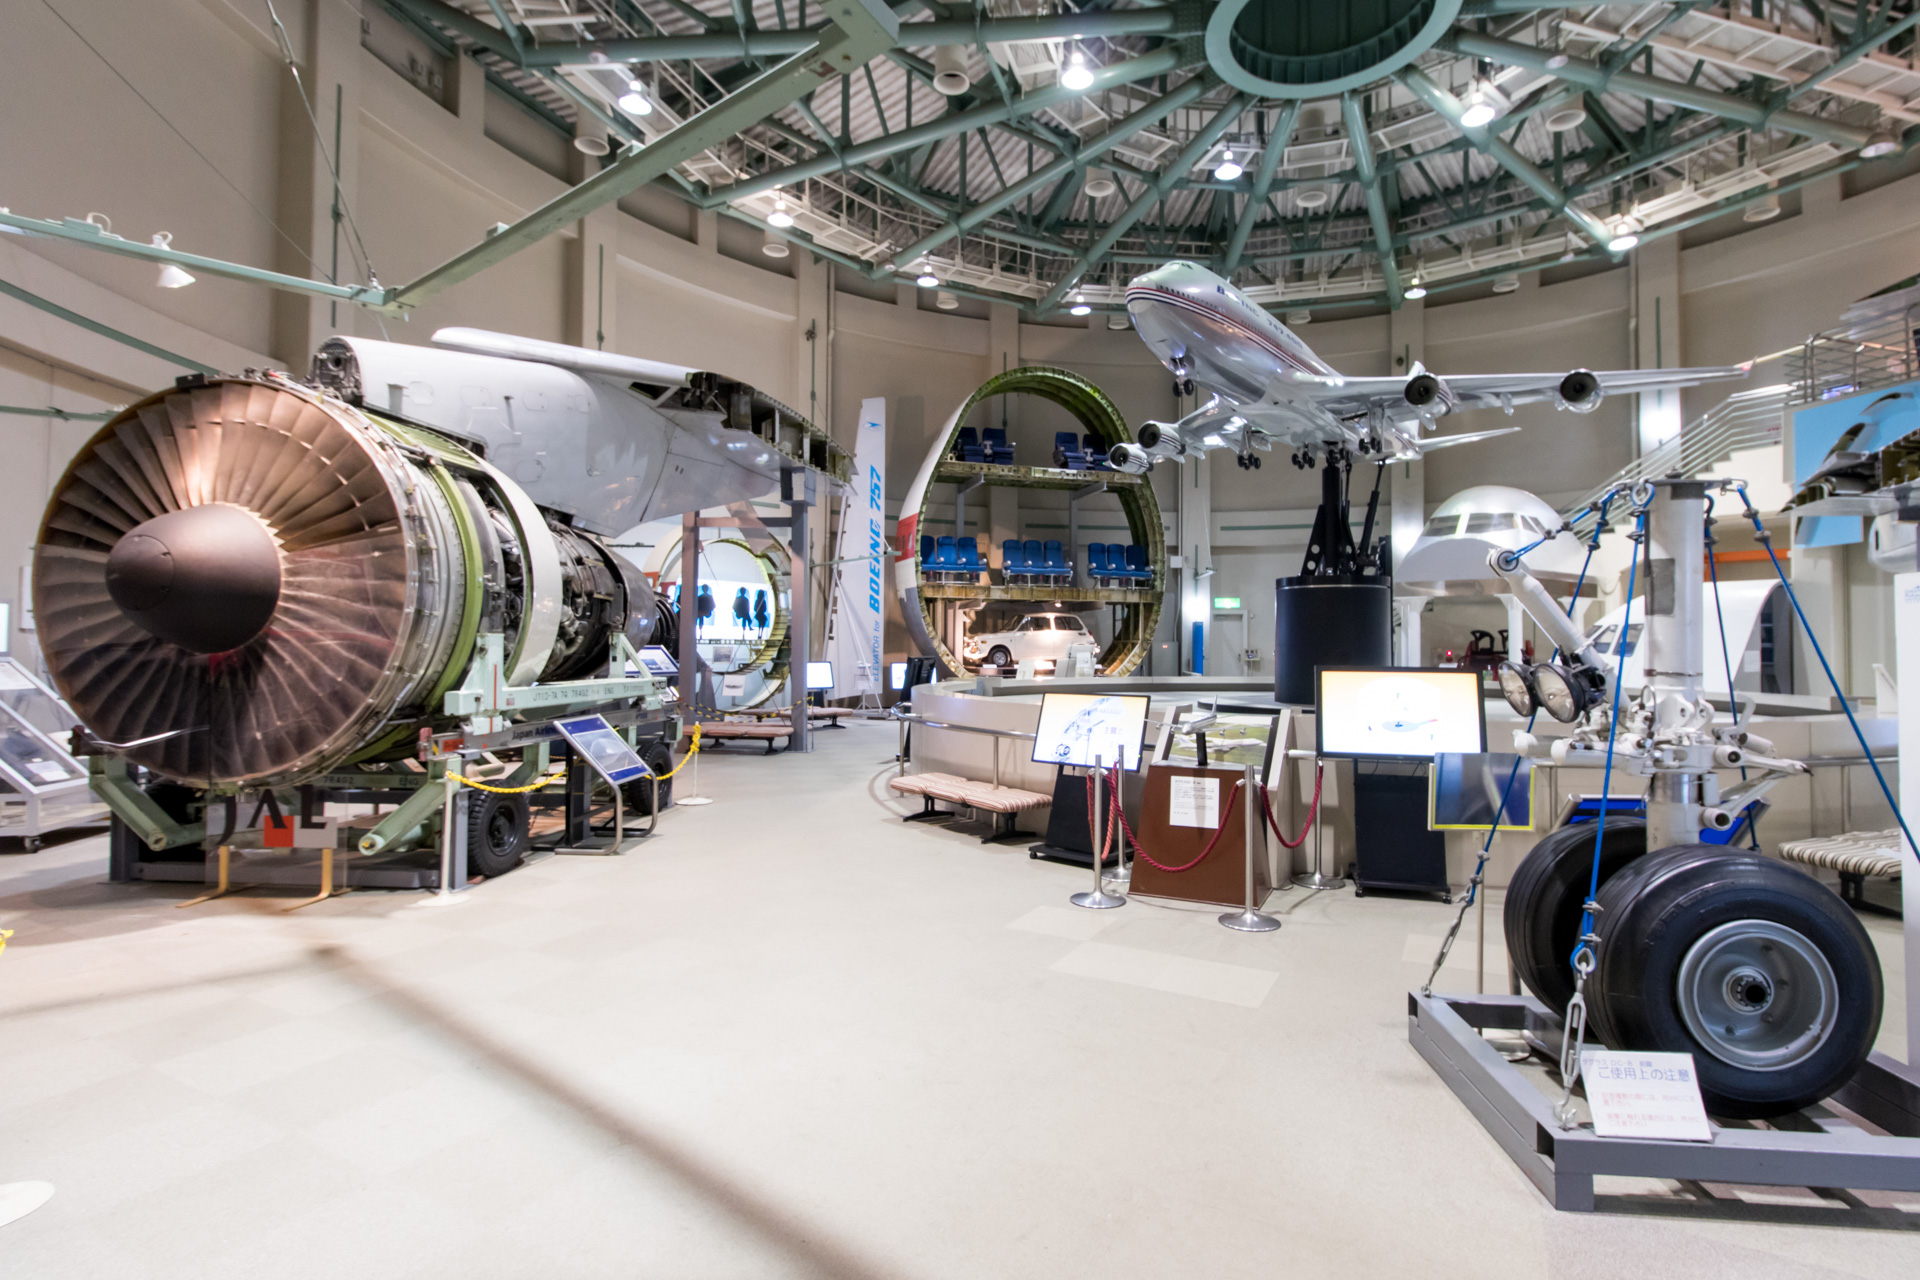 Museum of Aeronautical Science